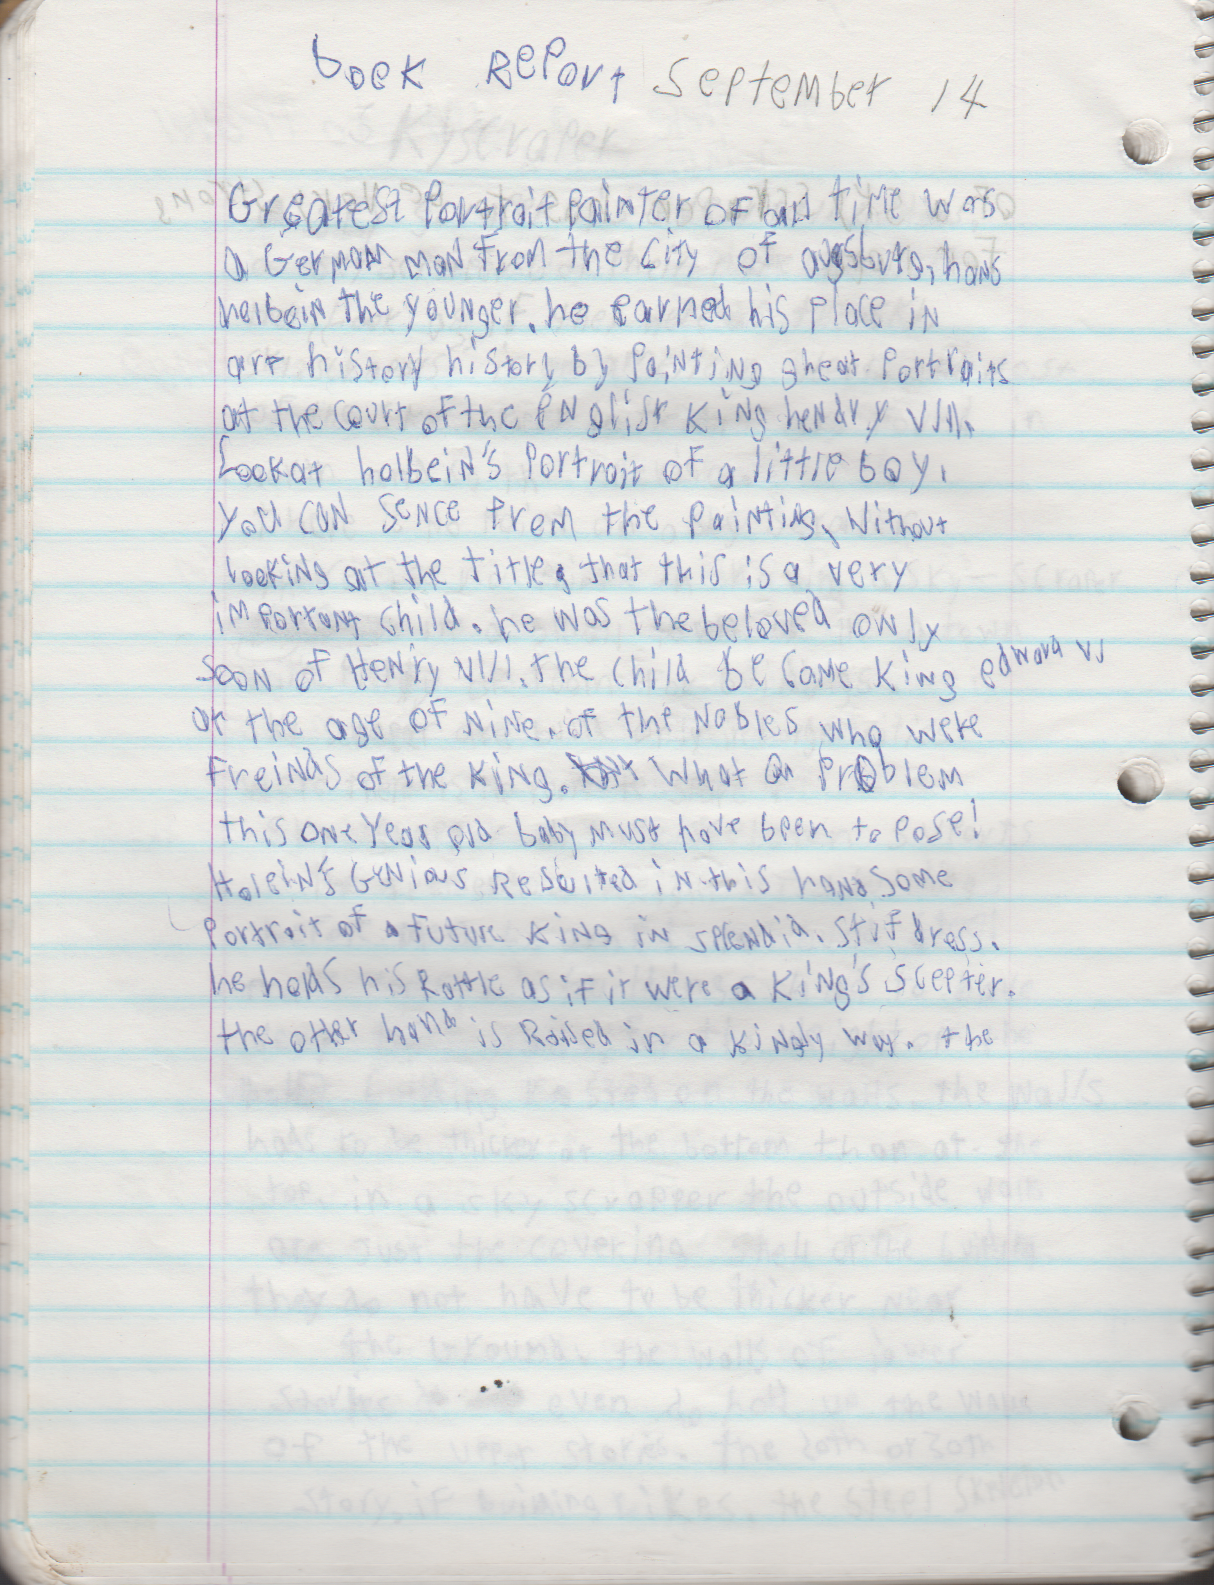 1996-08-18 - Saturday - 11 yr old Joey Arnold's School Book, dates through to 1998 apx, mostly 96, Writings, Drawings, Etc-075.png